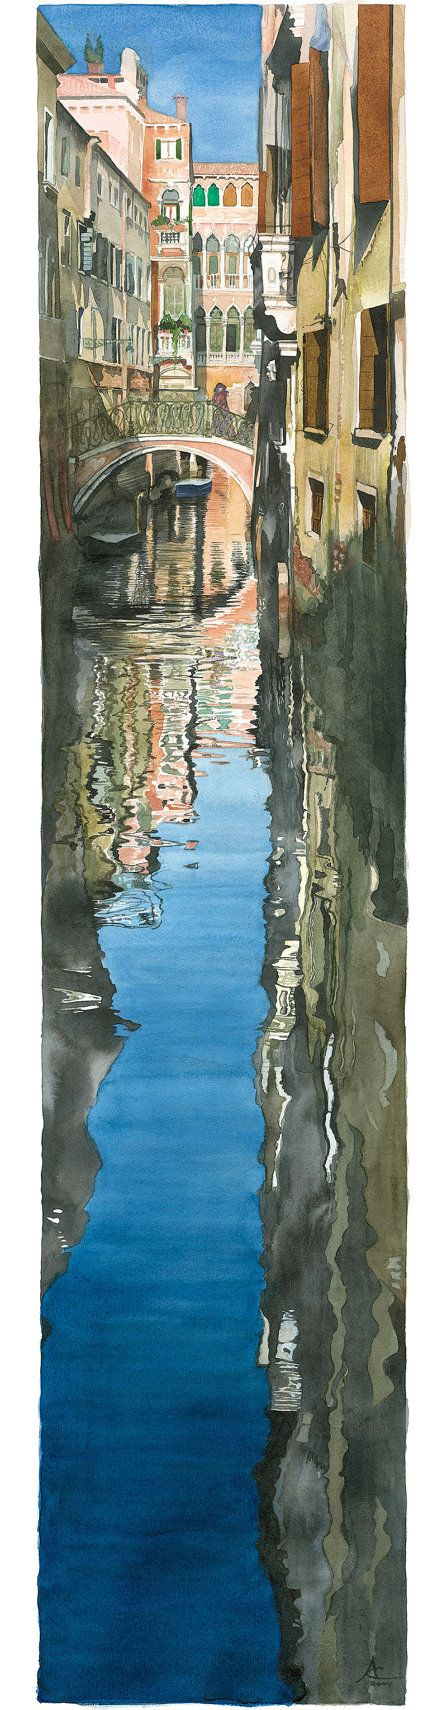 Watercolour Giclée print of view from canal between houses in Venice